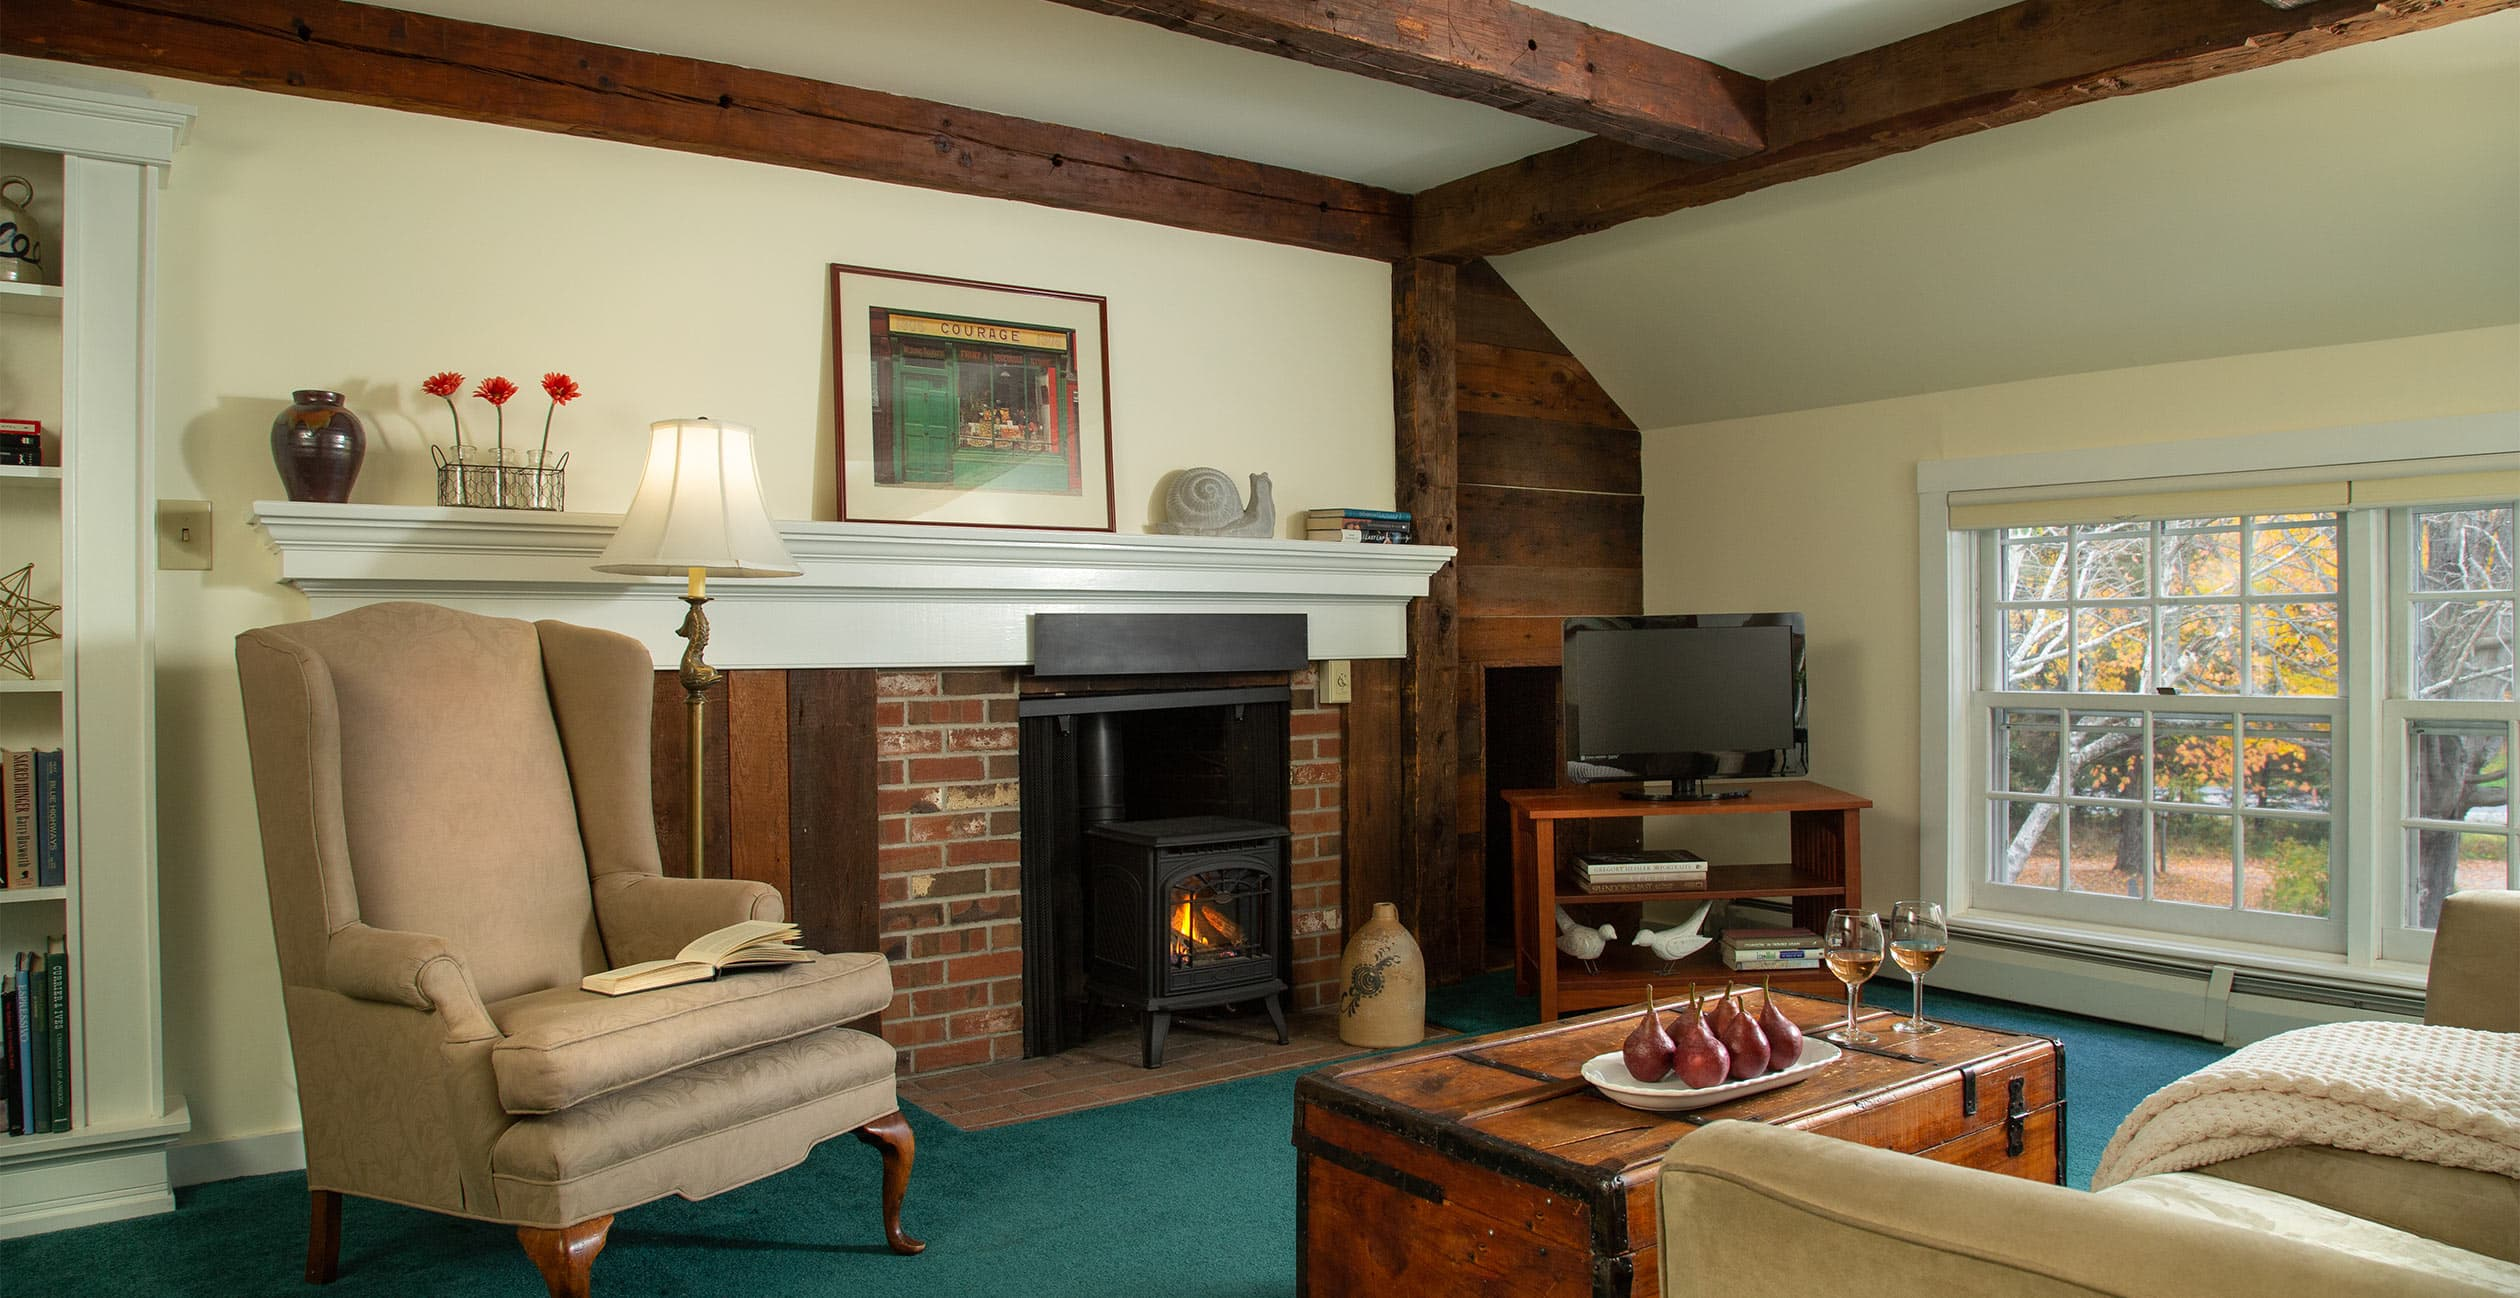 Fireplace, chair, and couch in Room 15